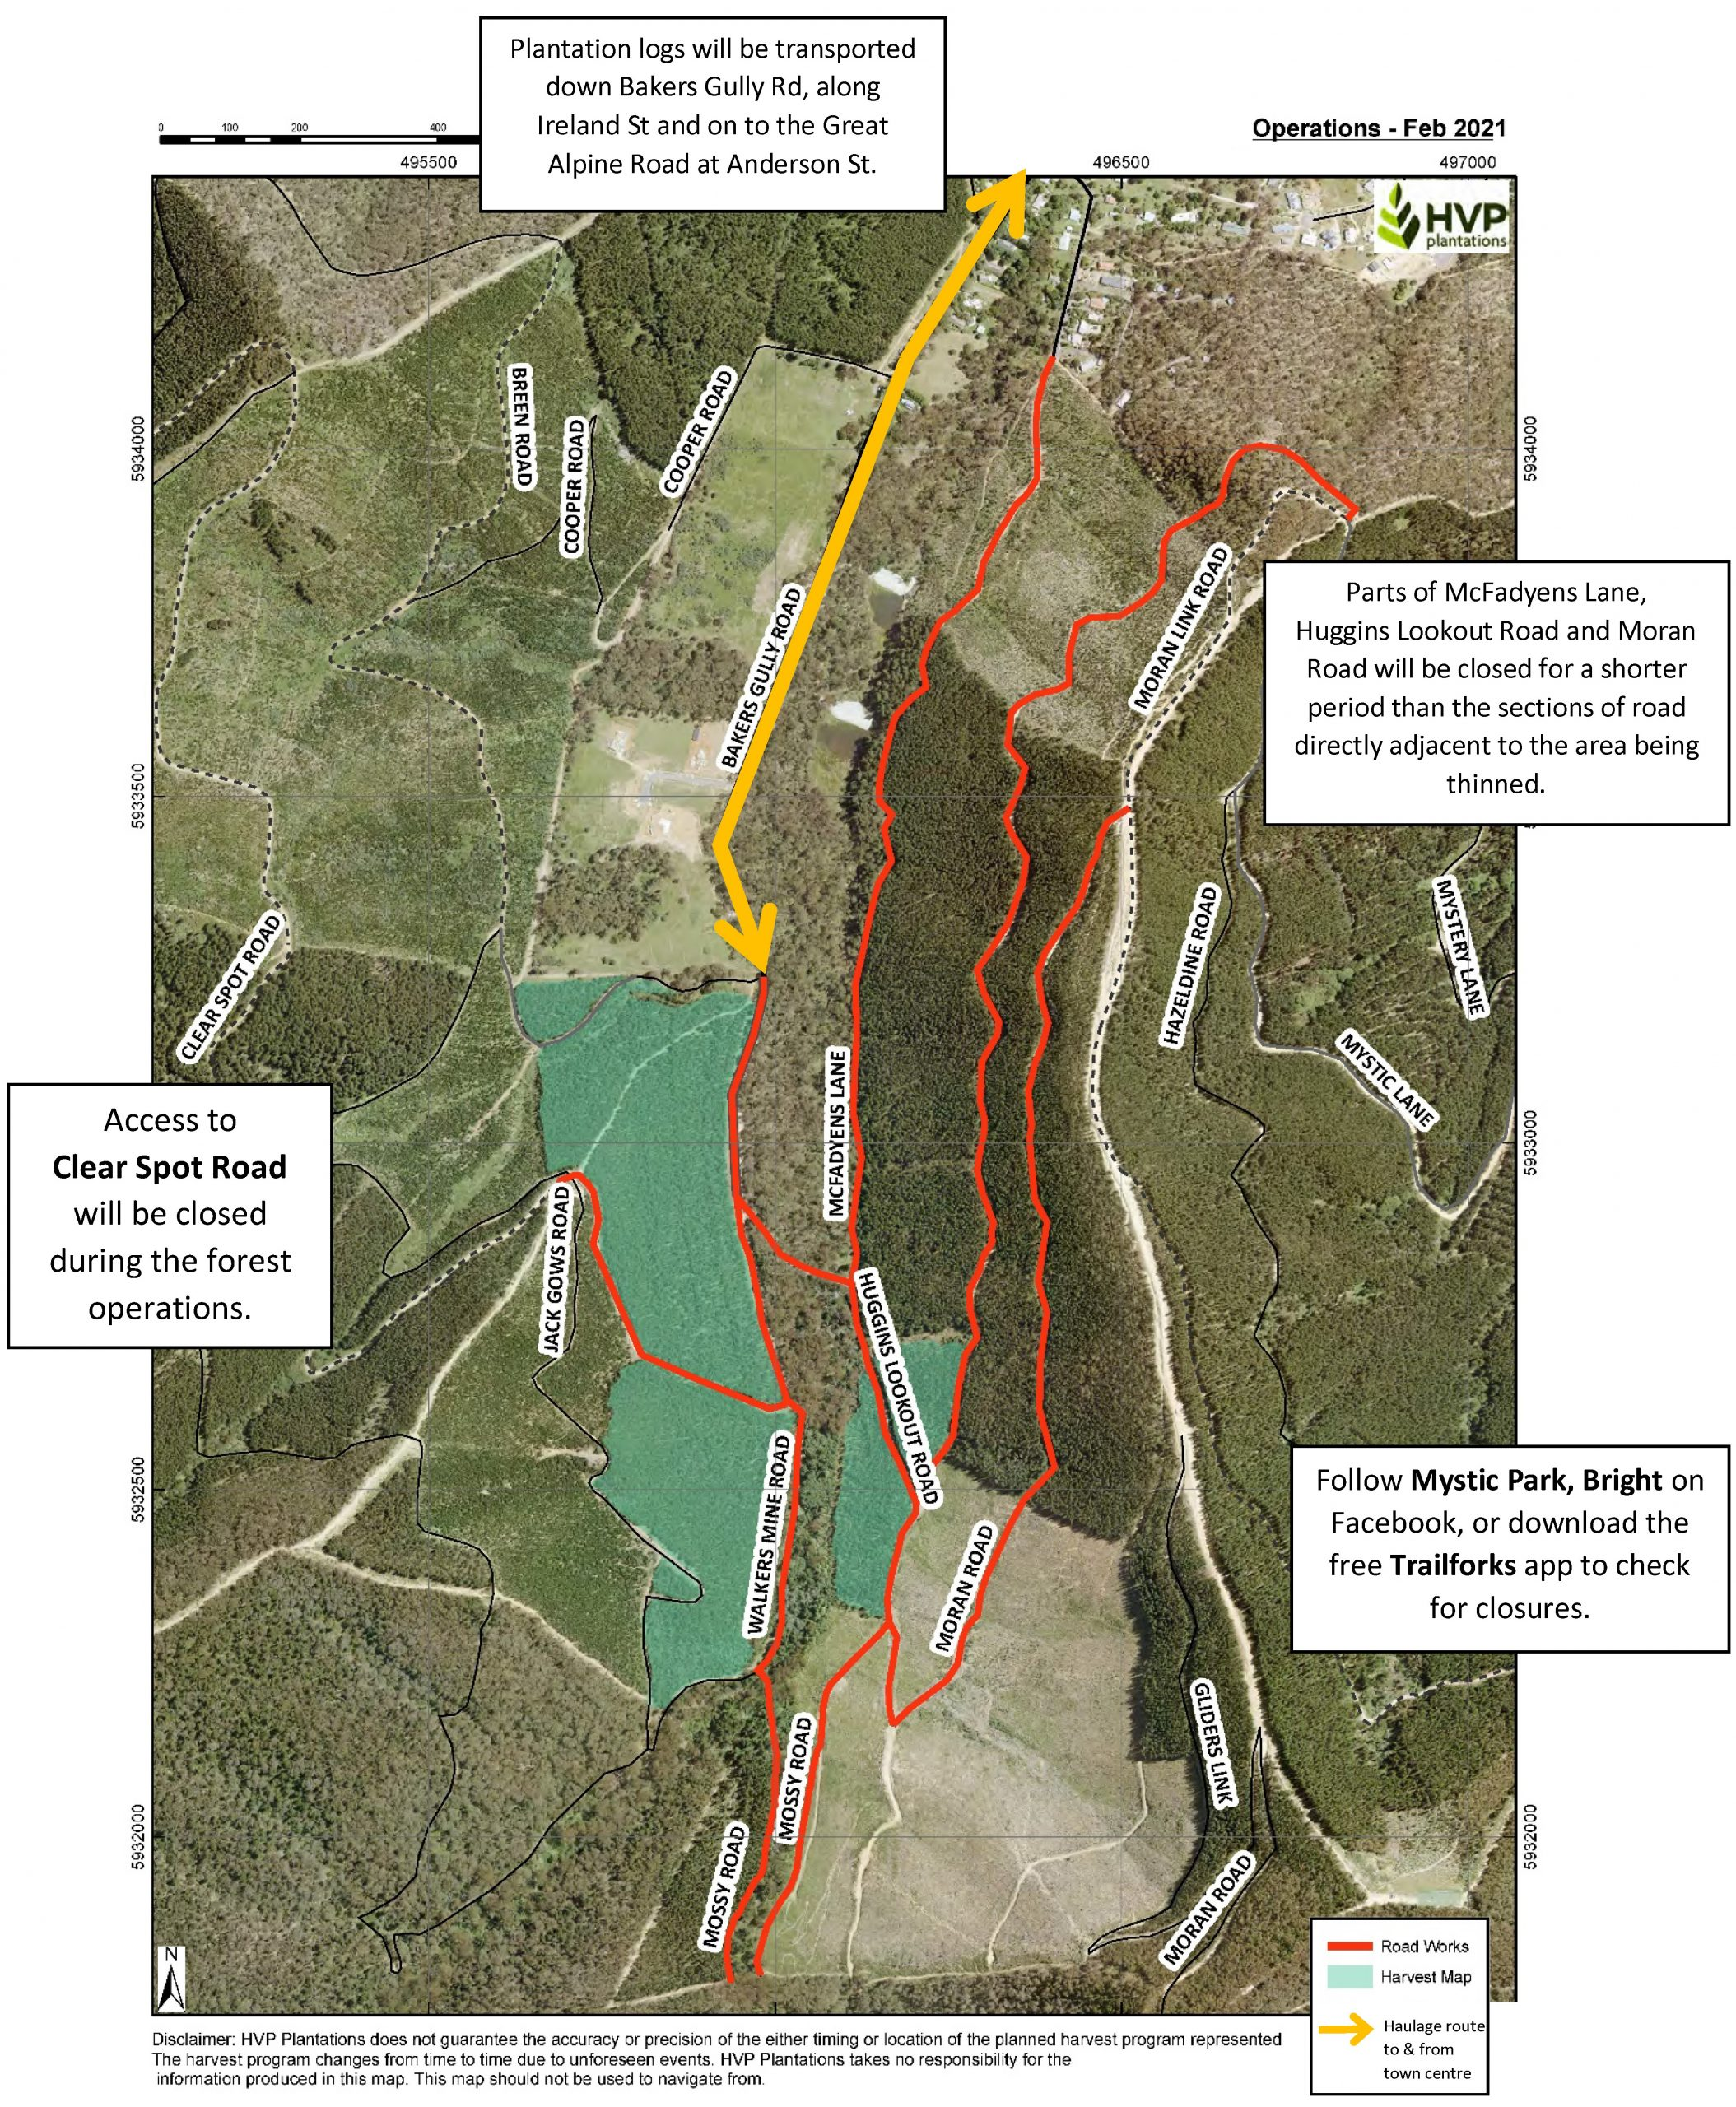 Map showing areas of Bakers Gully with Feb/Mar 2021 forest operations